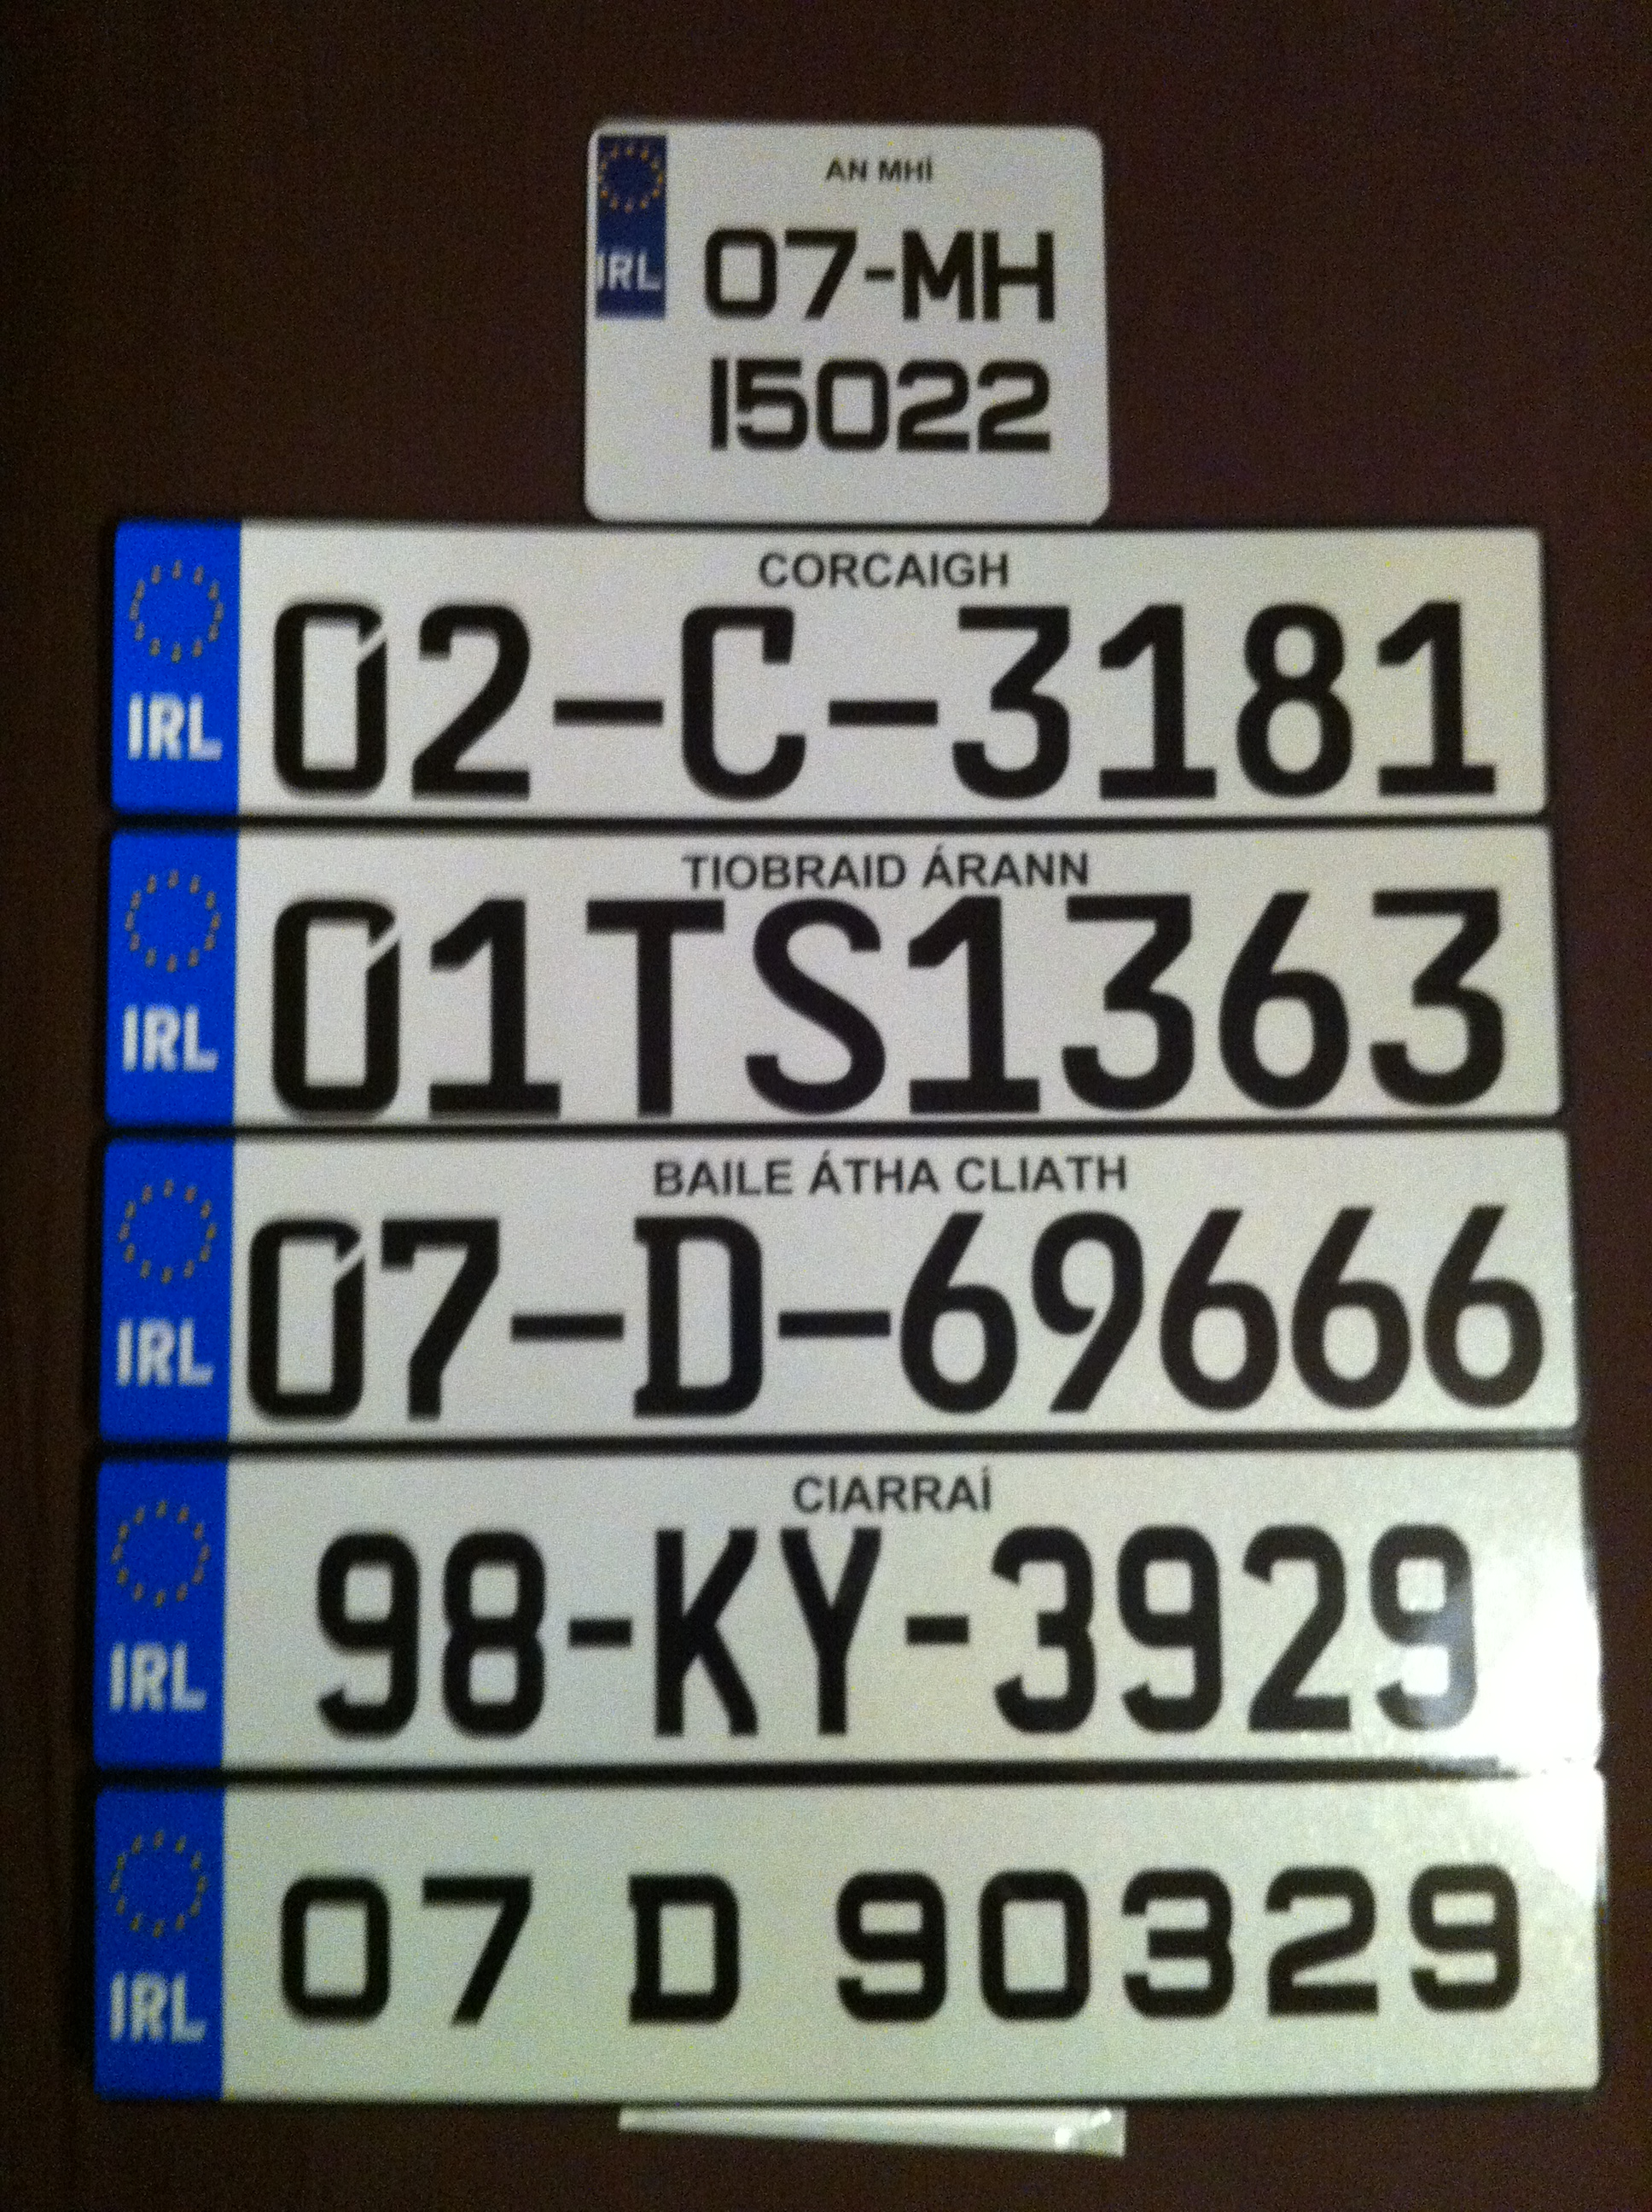 Samples - Irish Number Plates Design and Order Online Plates365.com